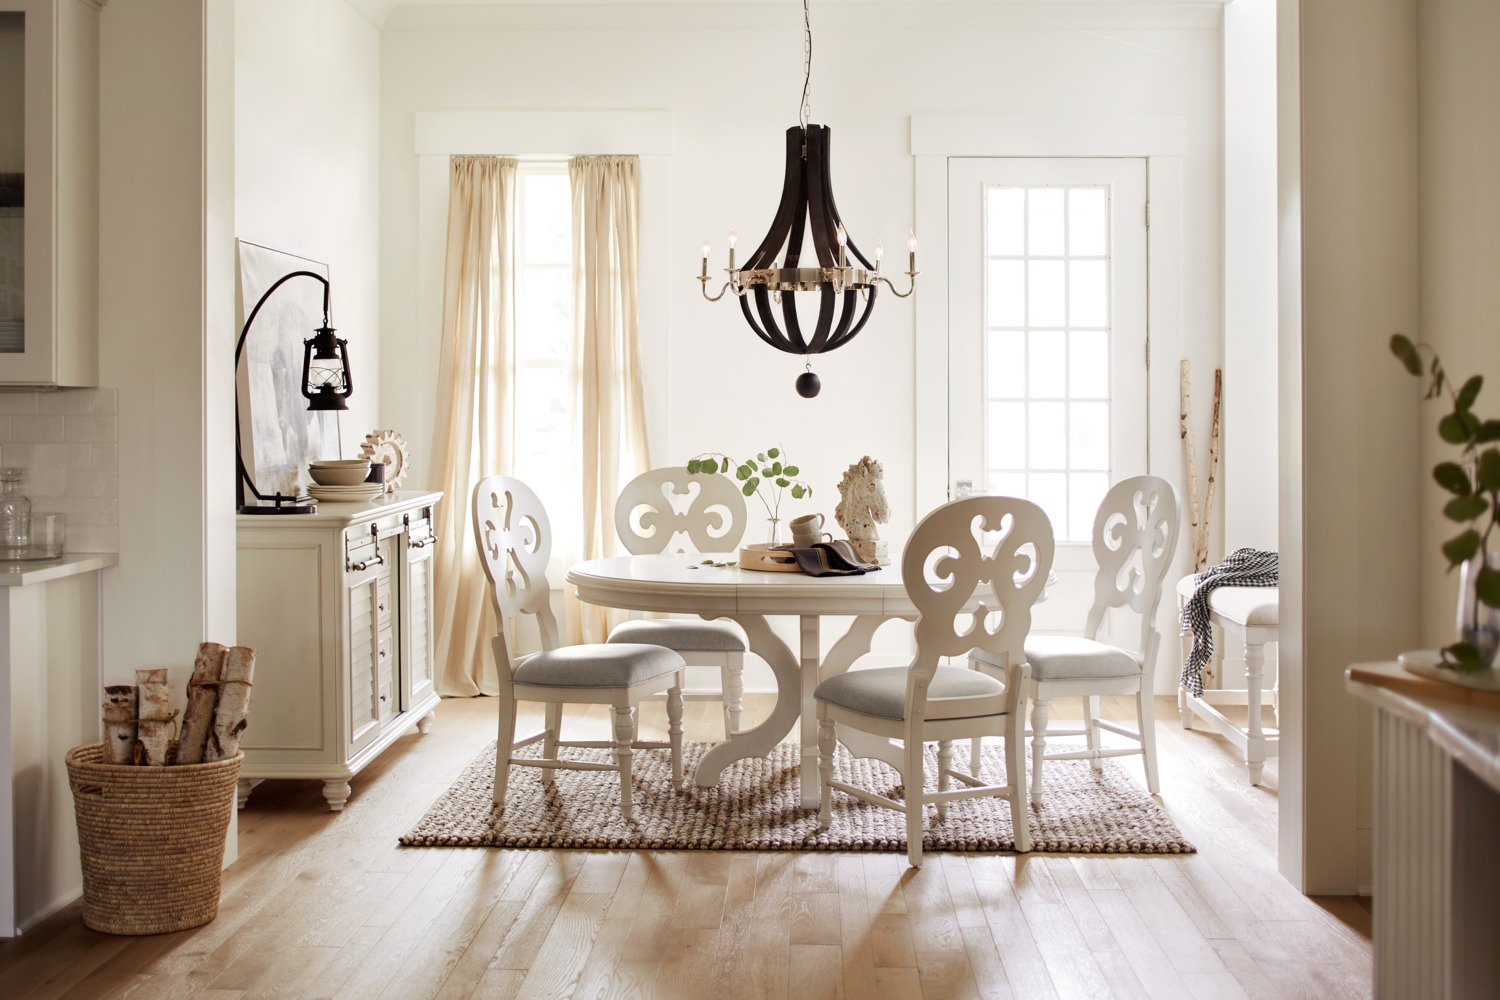 dining room rowe furniture city accent value living sets recliners distressed table with chairs second hand ing new does not appeal your taste there are many wonderful options